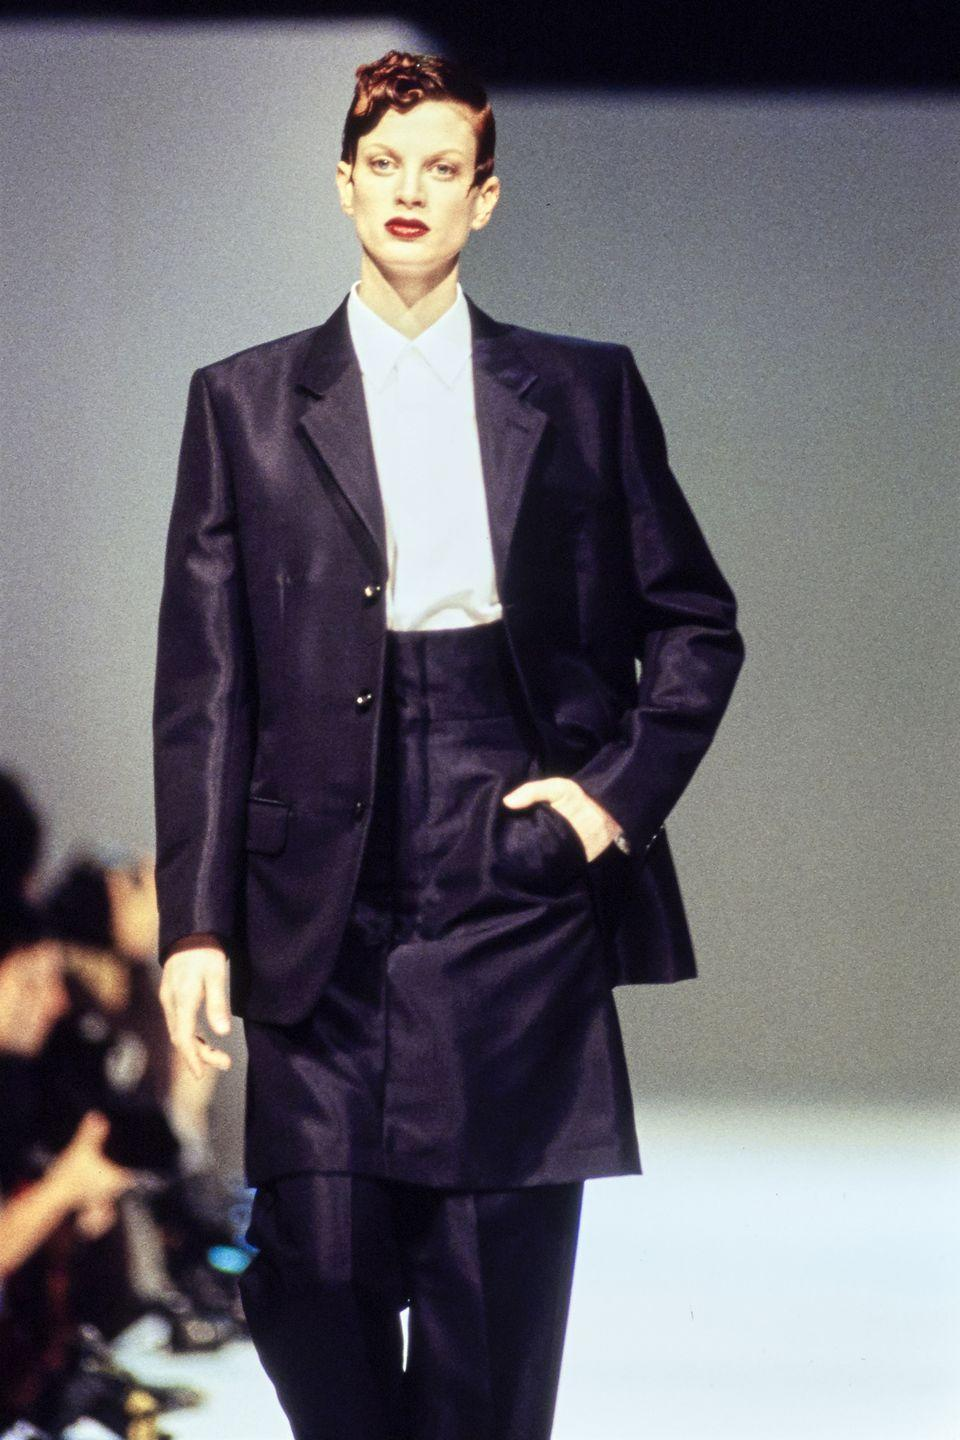 <p>Cited as an unconventional beauty, McMenamy was nonetheless celebrated for her androgyny. She thankfully didn't heed the advice of model agent Eileen Ford, who encouraged her to get plastic surgery. From labels like Chanel and Versace and Comme Des Garçons to photographers like Steven Meisel and Juergen Teller, the fashion industry embraced the Pennsylvania native's uniqueness. </p>